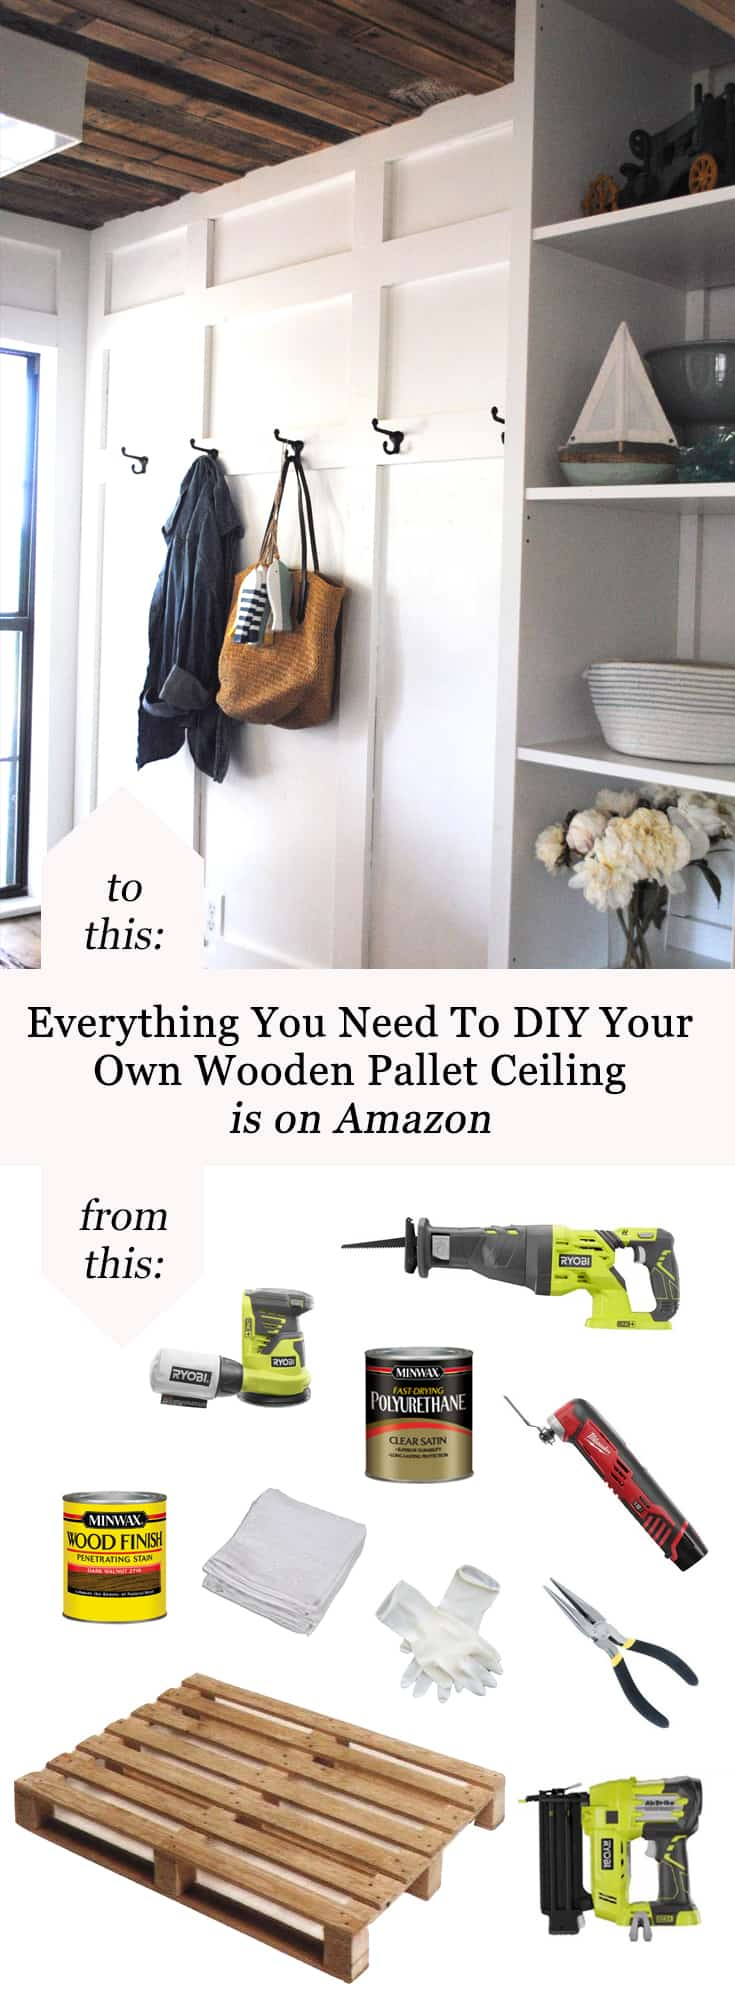 Everything You Need To DIY Your Own Wooden Pallet Ceiling Is On Amazon #homeimprovement #remodel #rustic #farmhouse #fixerupper